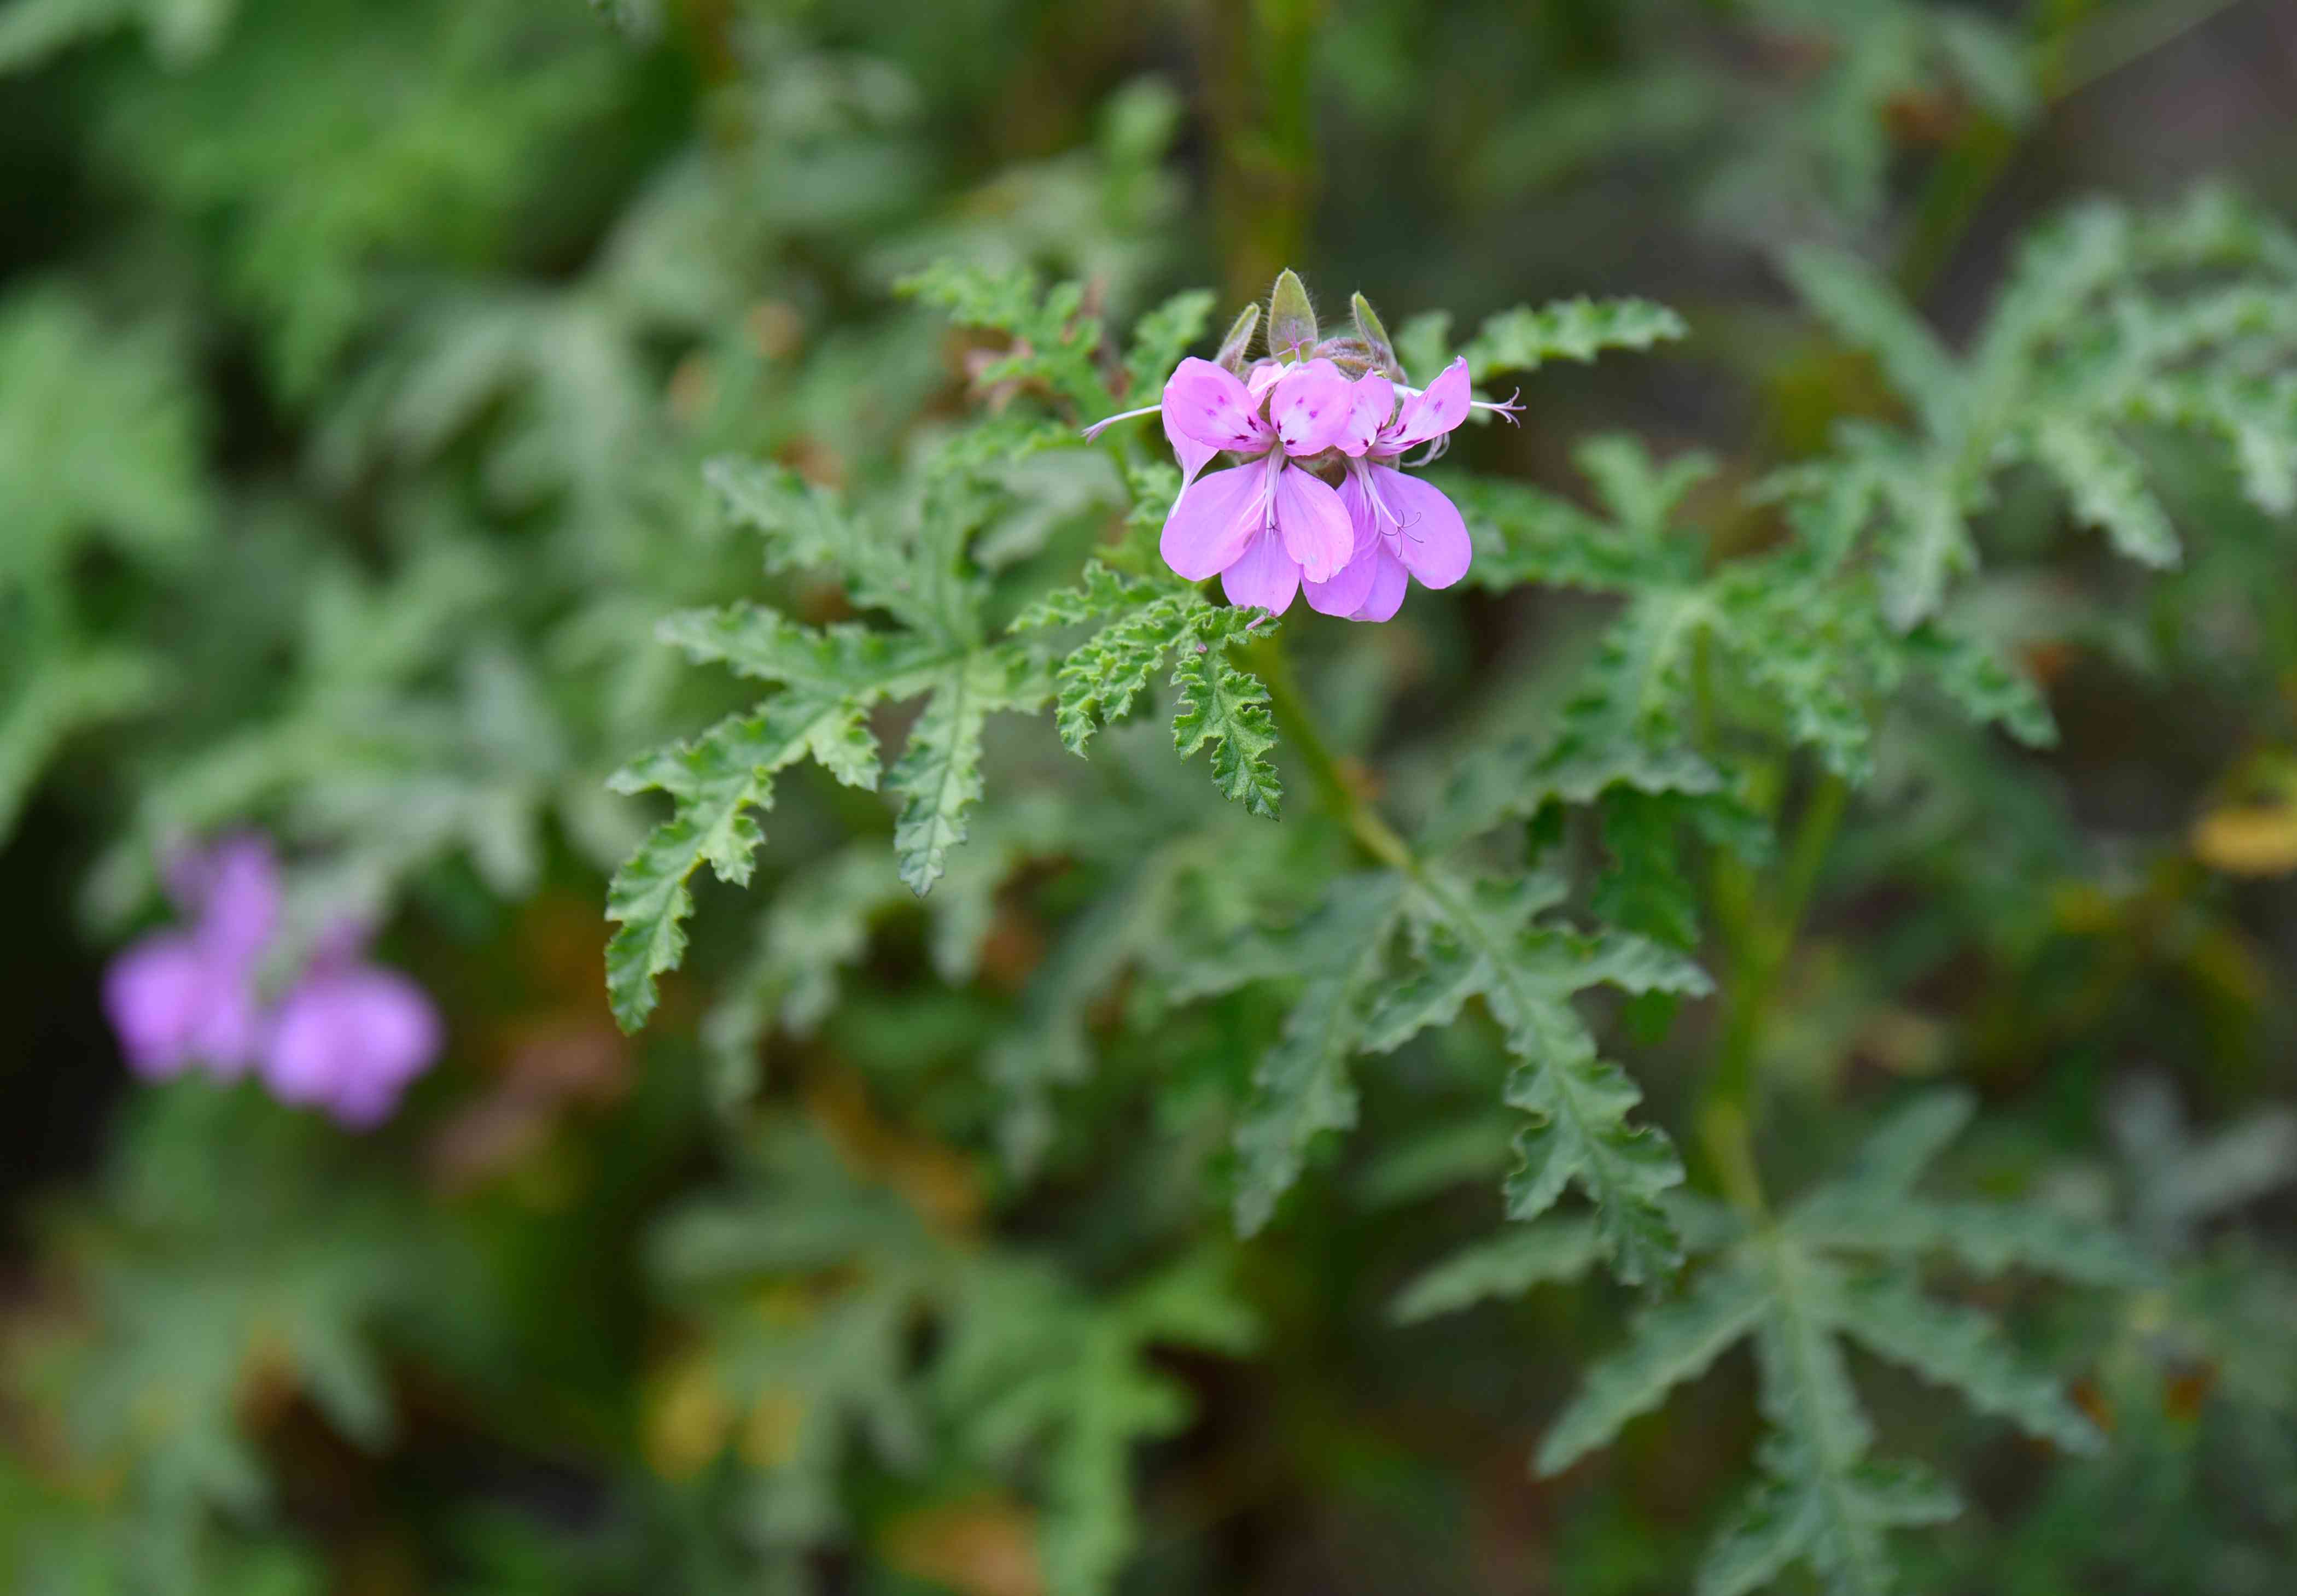 Scented-leaved geranium plant with curling leaves and small white flowers closeup